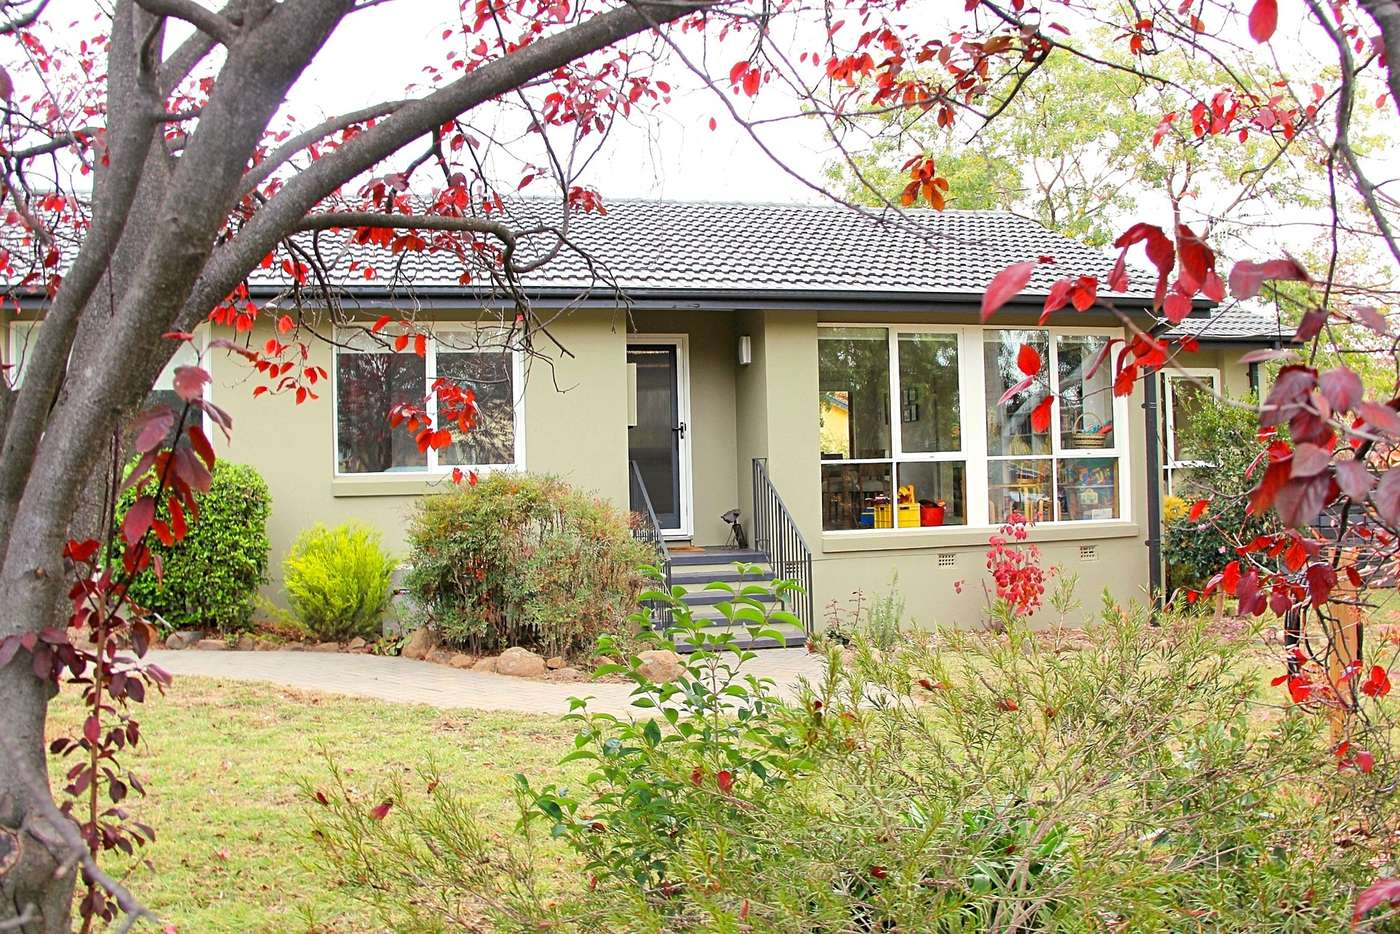 Main view of Homely house listing, 6 Prendergast Street, Curtin ACT 2605